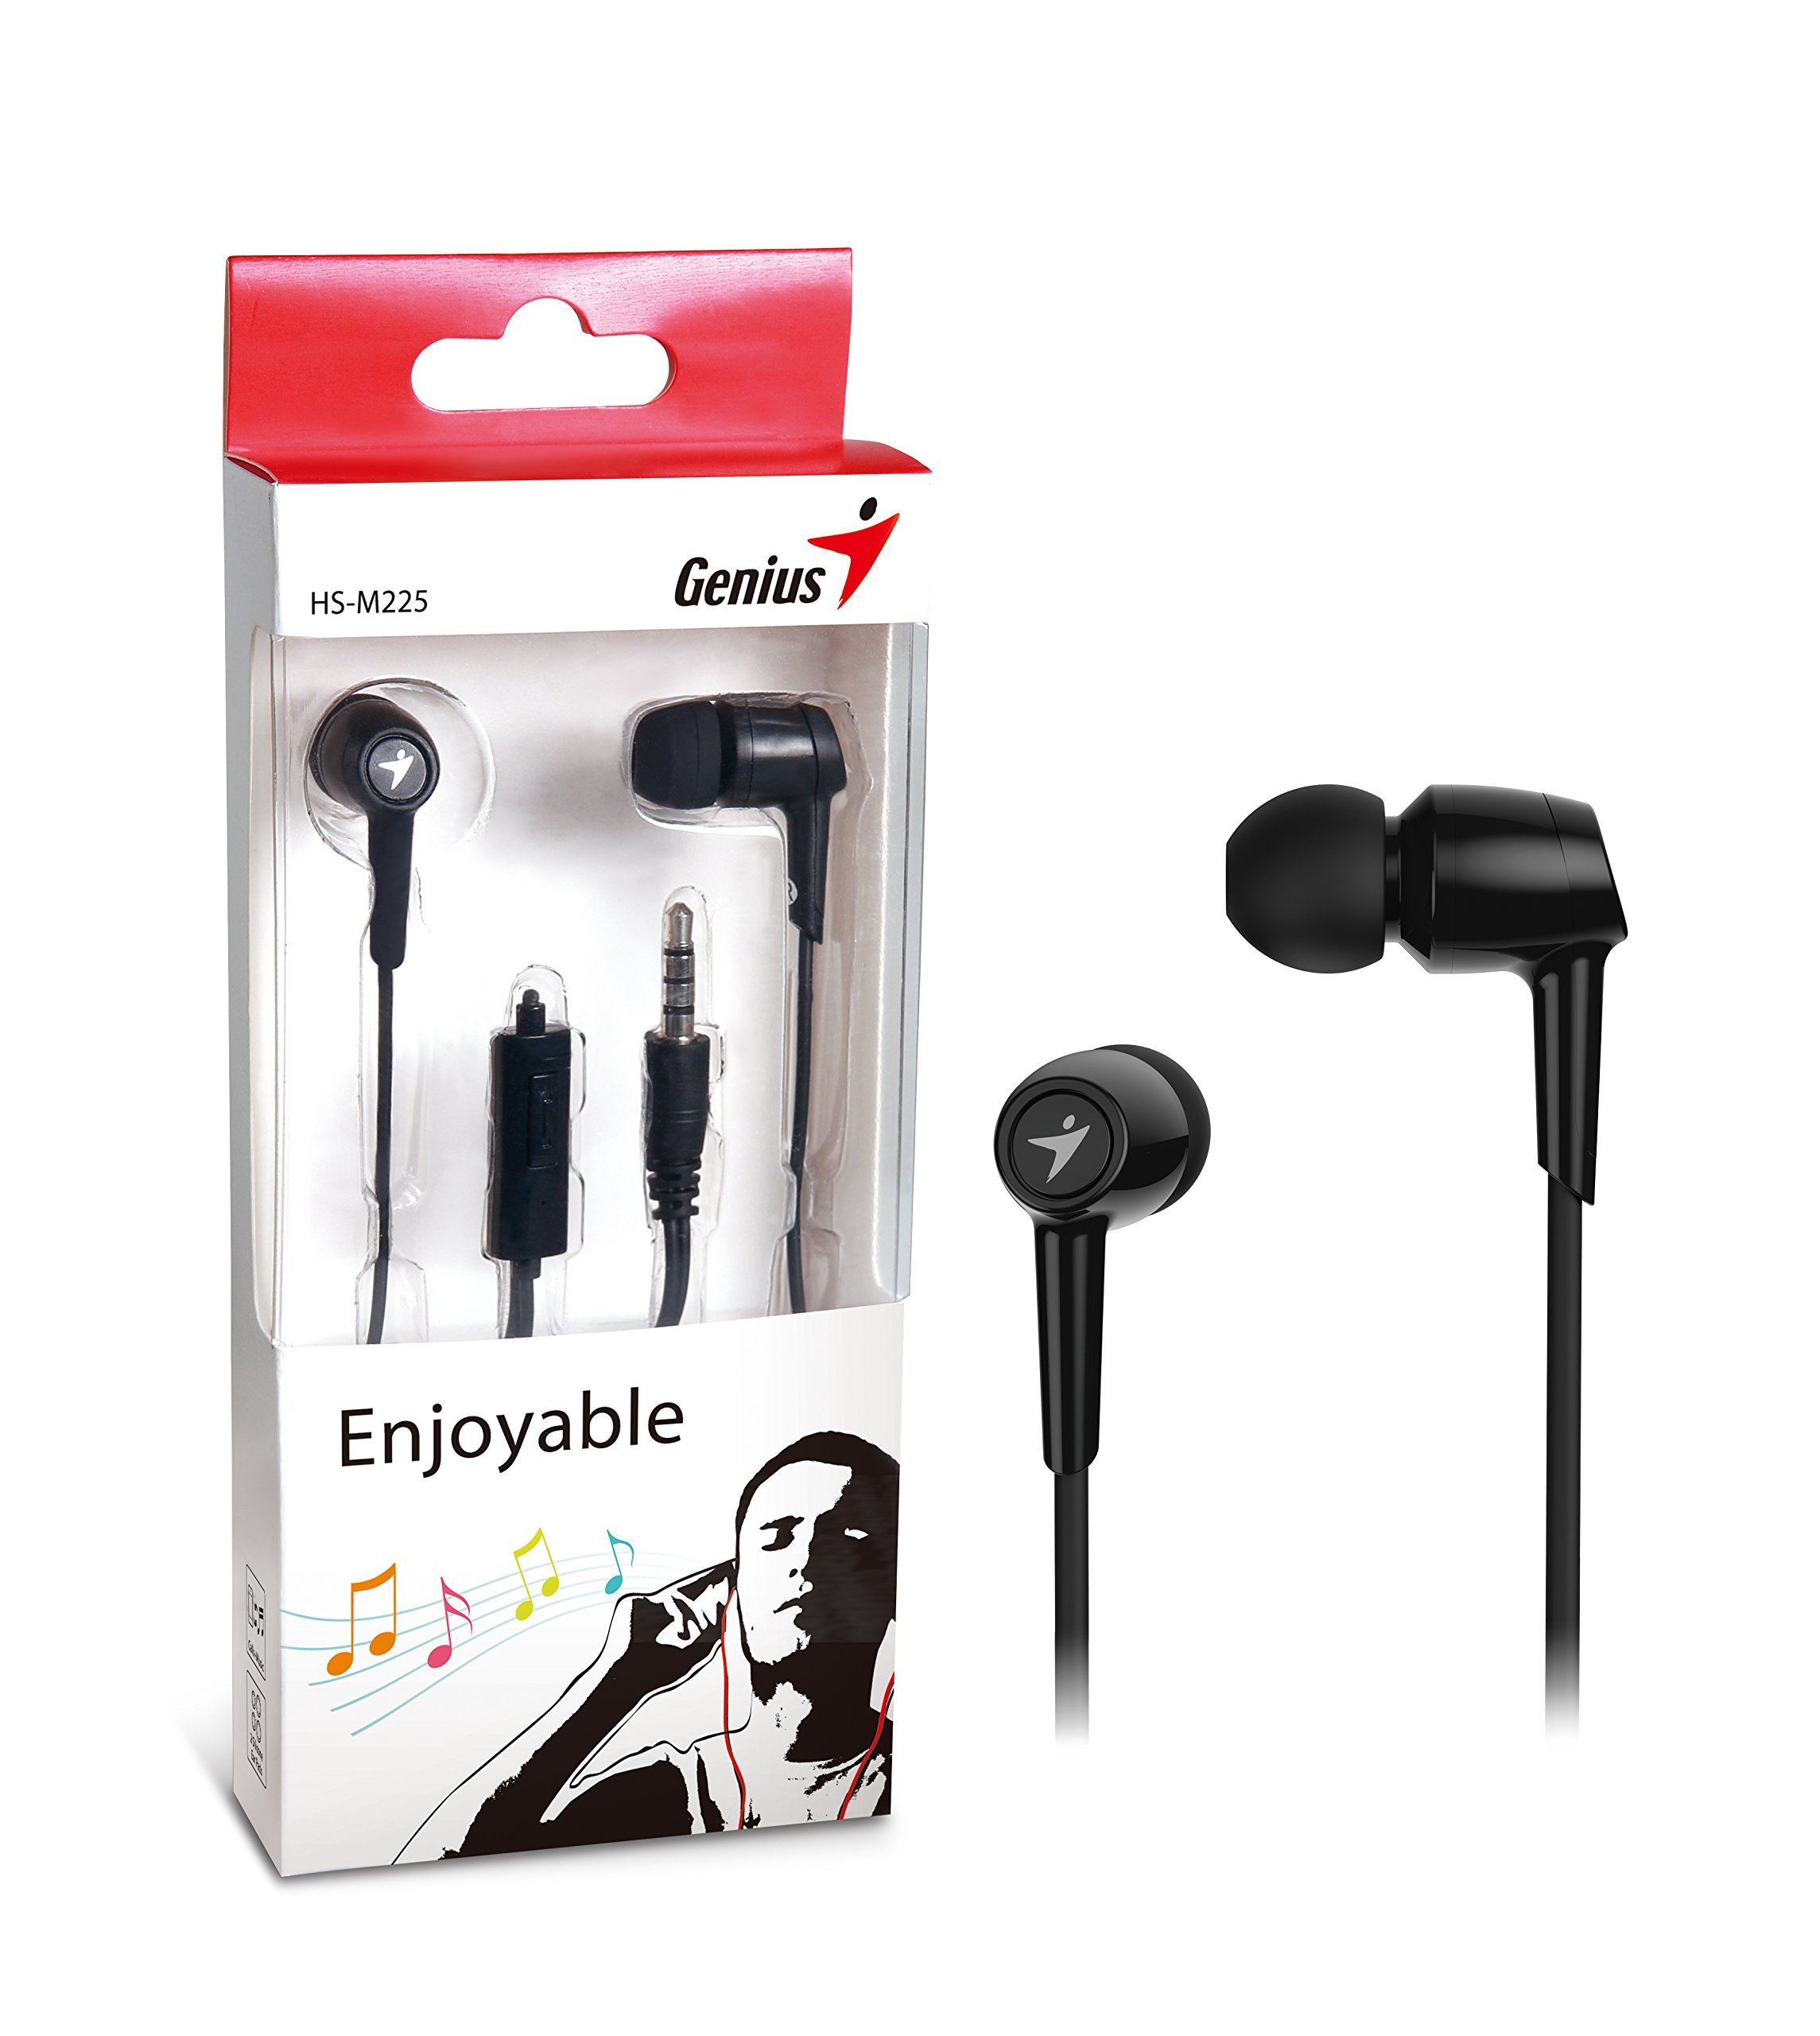 Genius Hs-m225 Earset - Stereo - Black - Mini-phone - Wired - 16 Ohm - 20 Hz - 15 Khz - Earbud - Binaural - In-ear - 3.94 Ft Cable (176251)